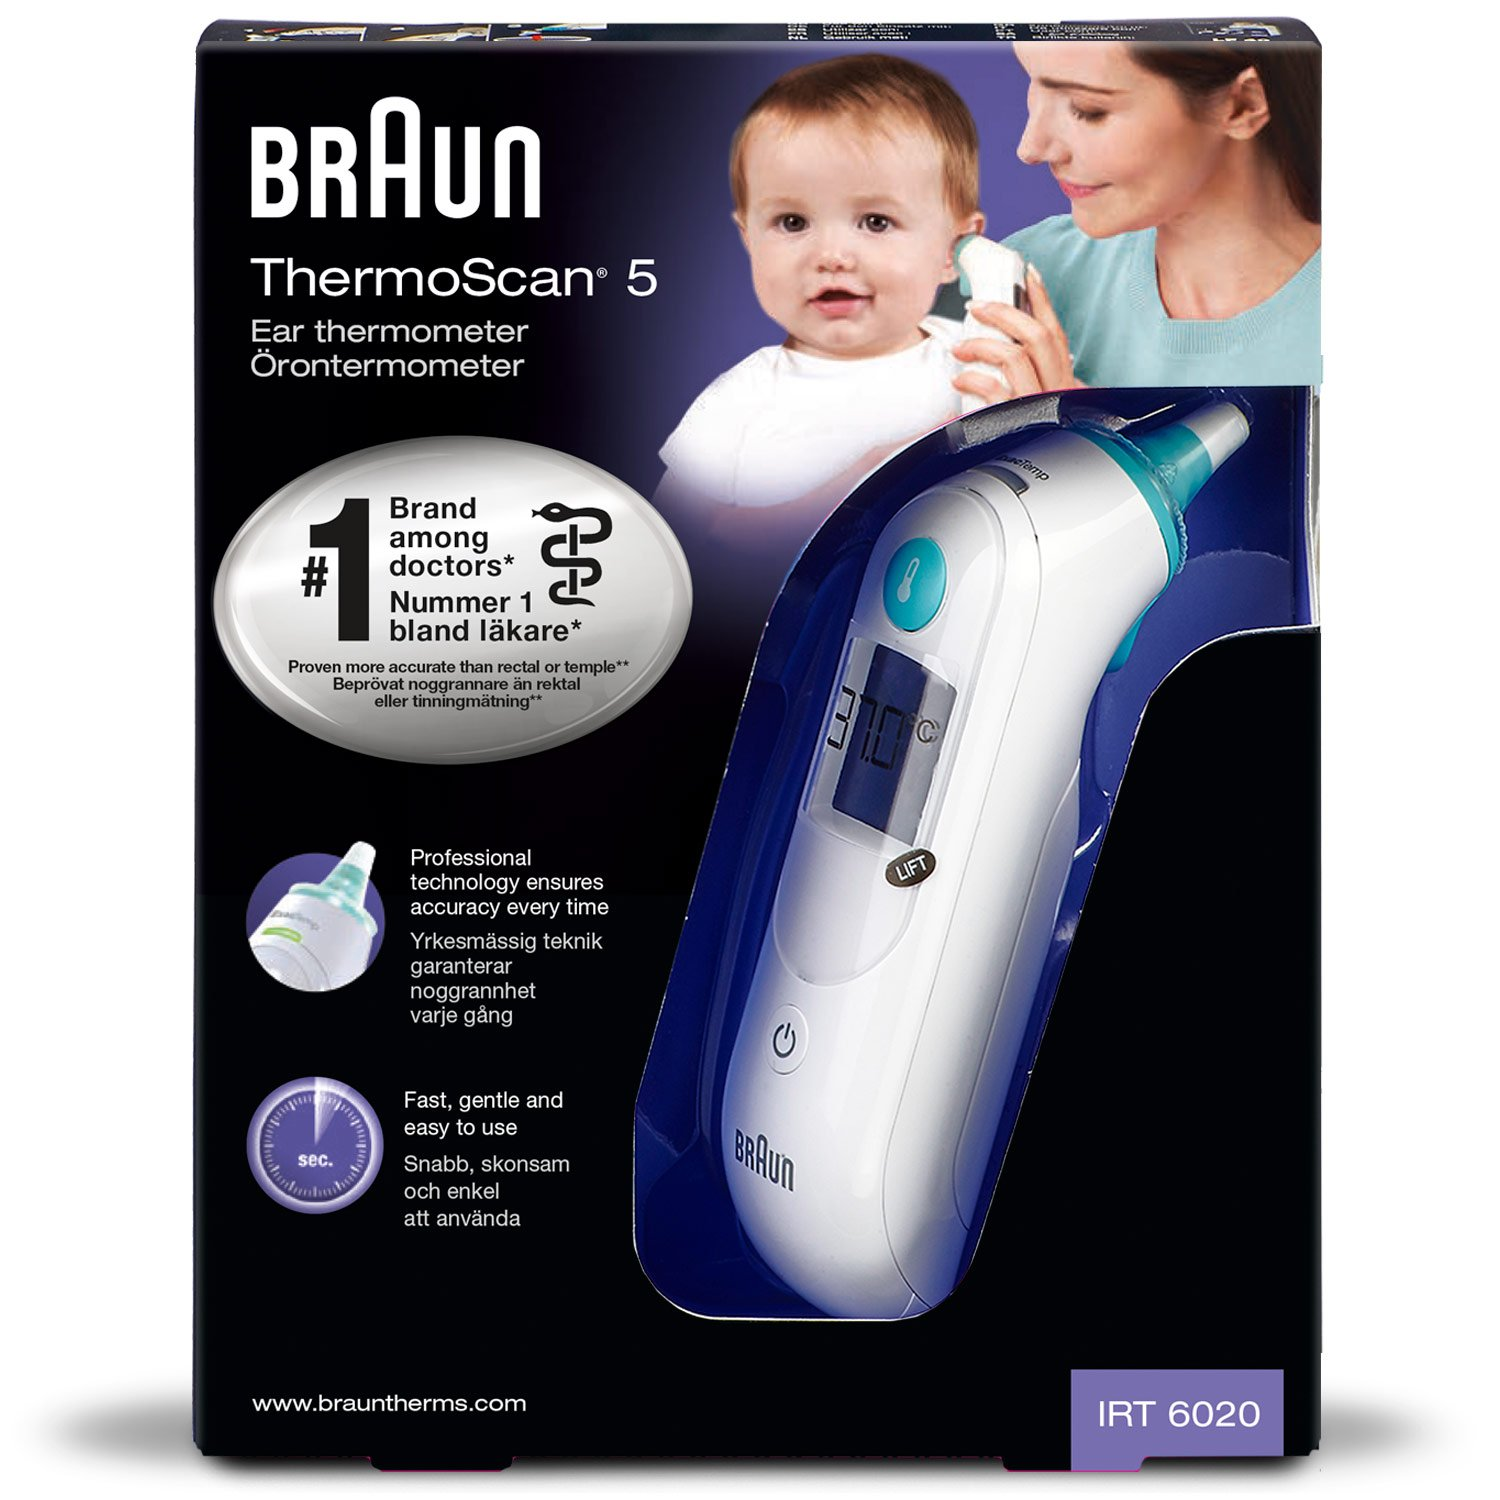 Braun Irt6020 Thermoscan 5 Ear Thermometer Temperature Check Kids